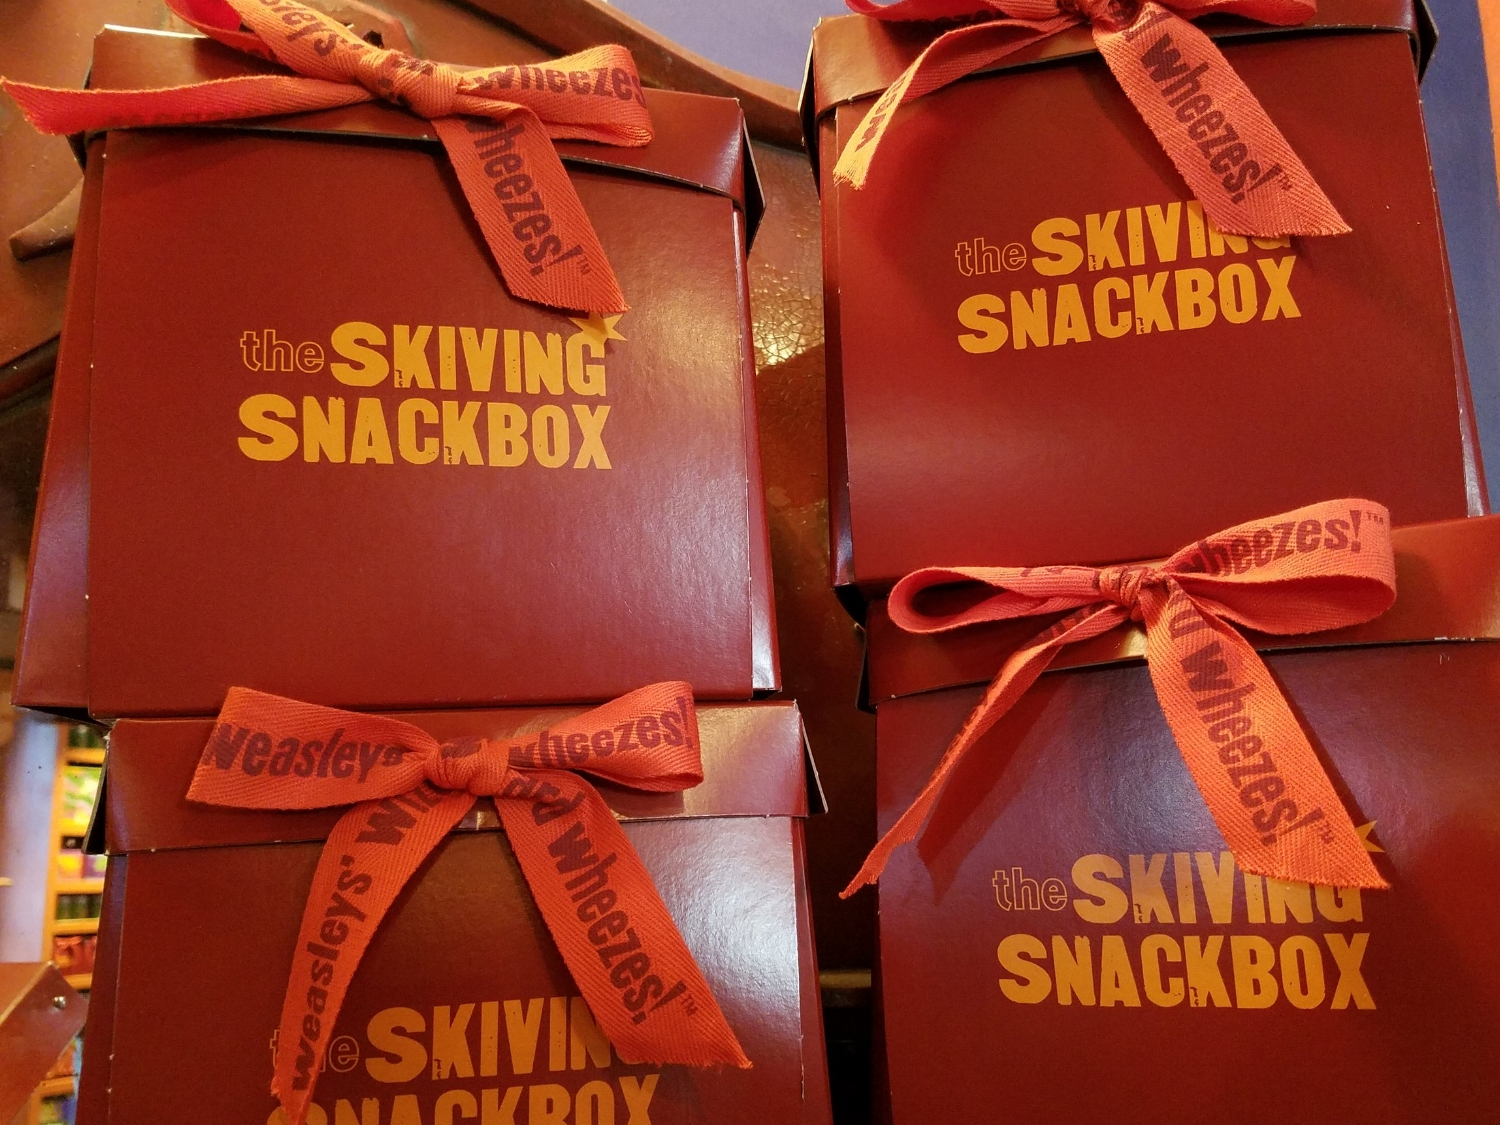 Skiving Snackboxes from Weasley's Wizarding Wheezes in Diagon Alley.